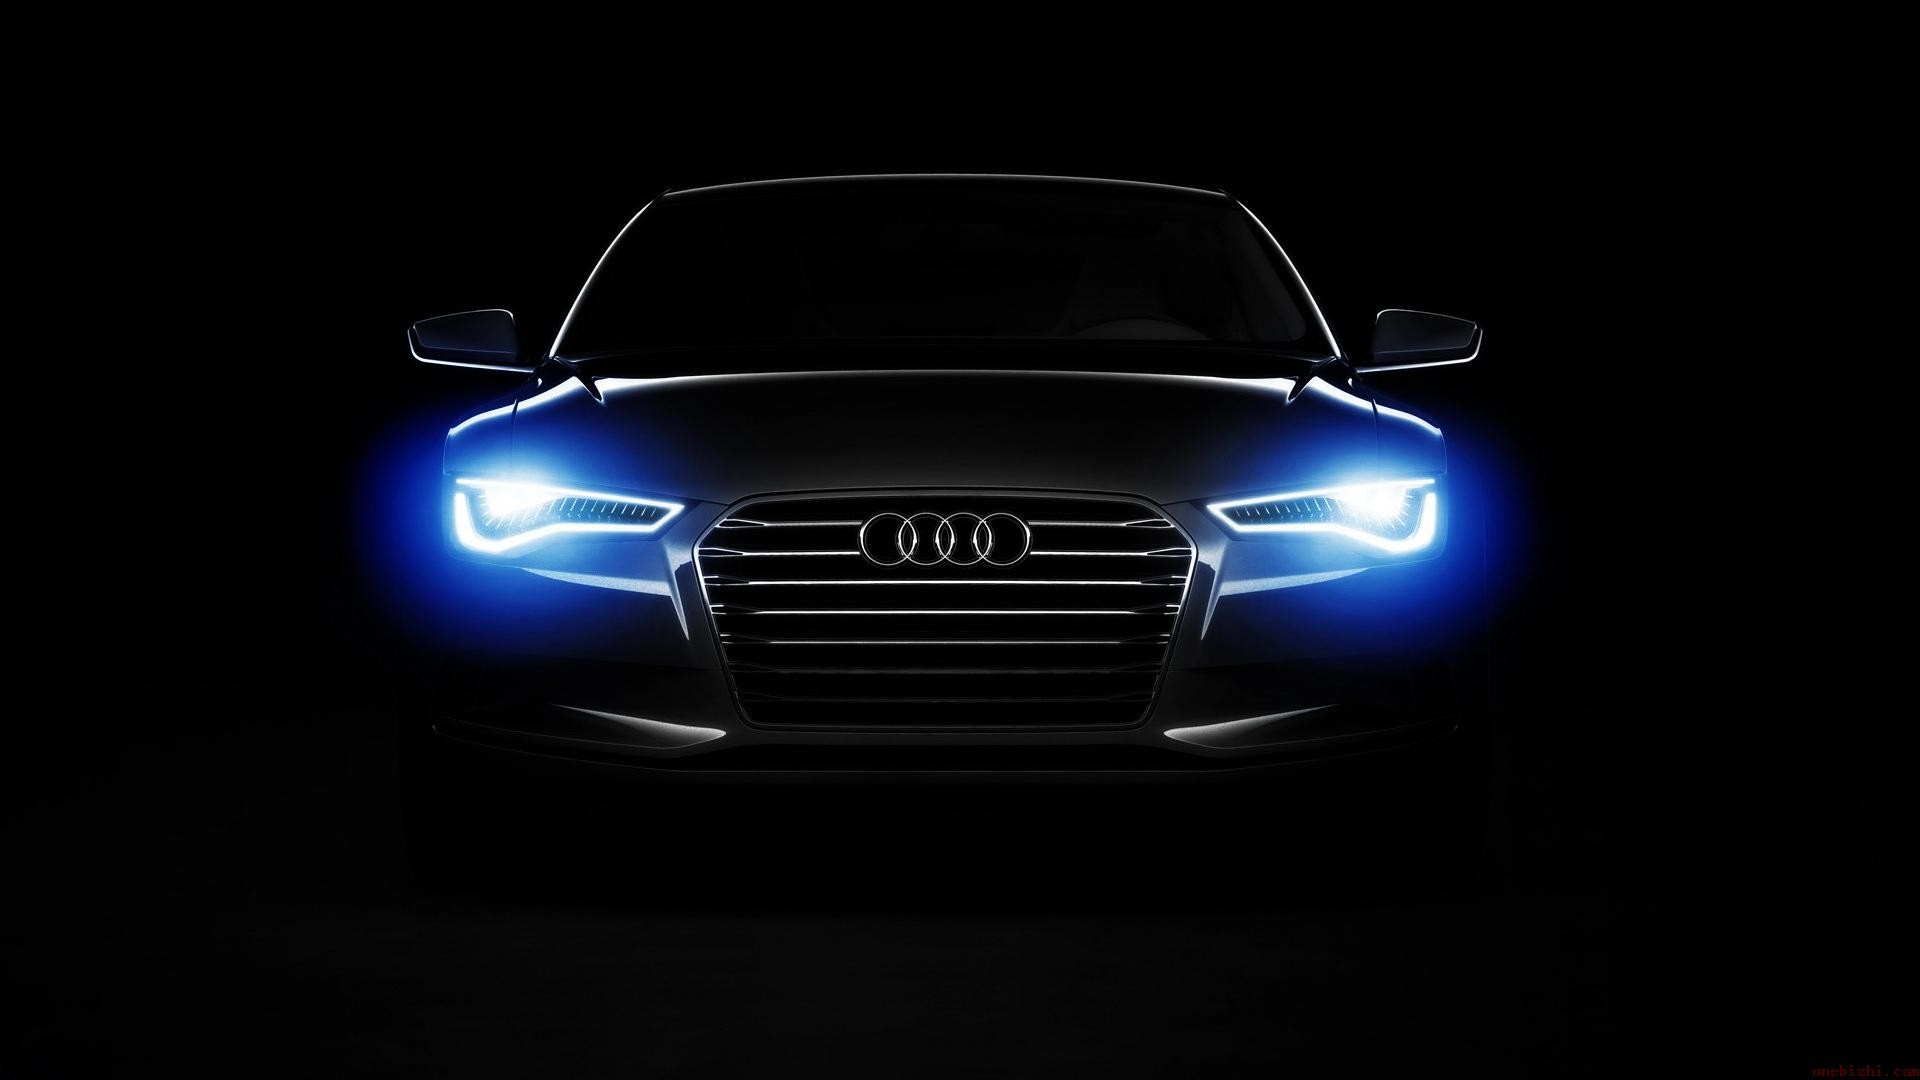 Images for Gt Audi Headlights Wallpaper 1920x1080px